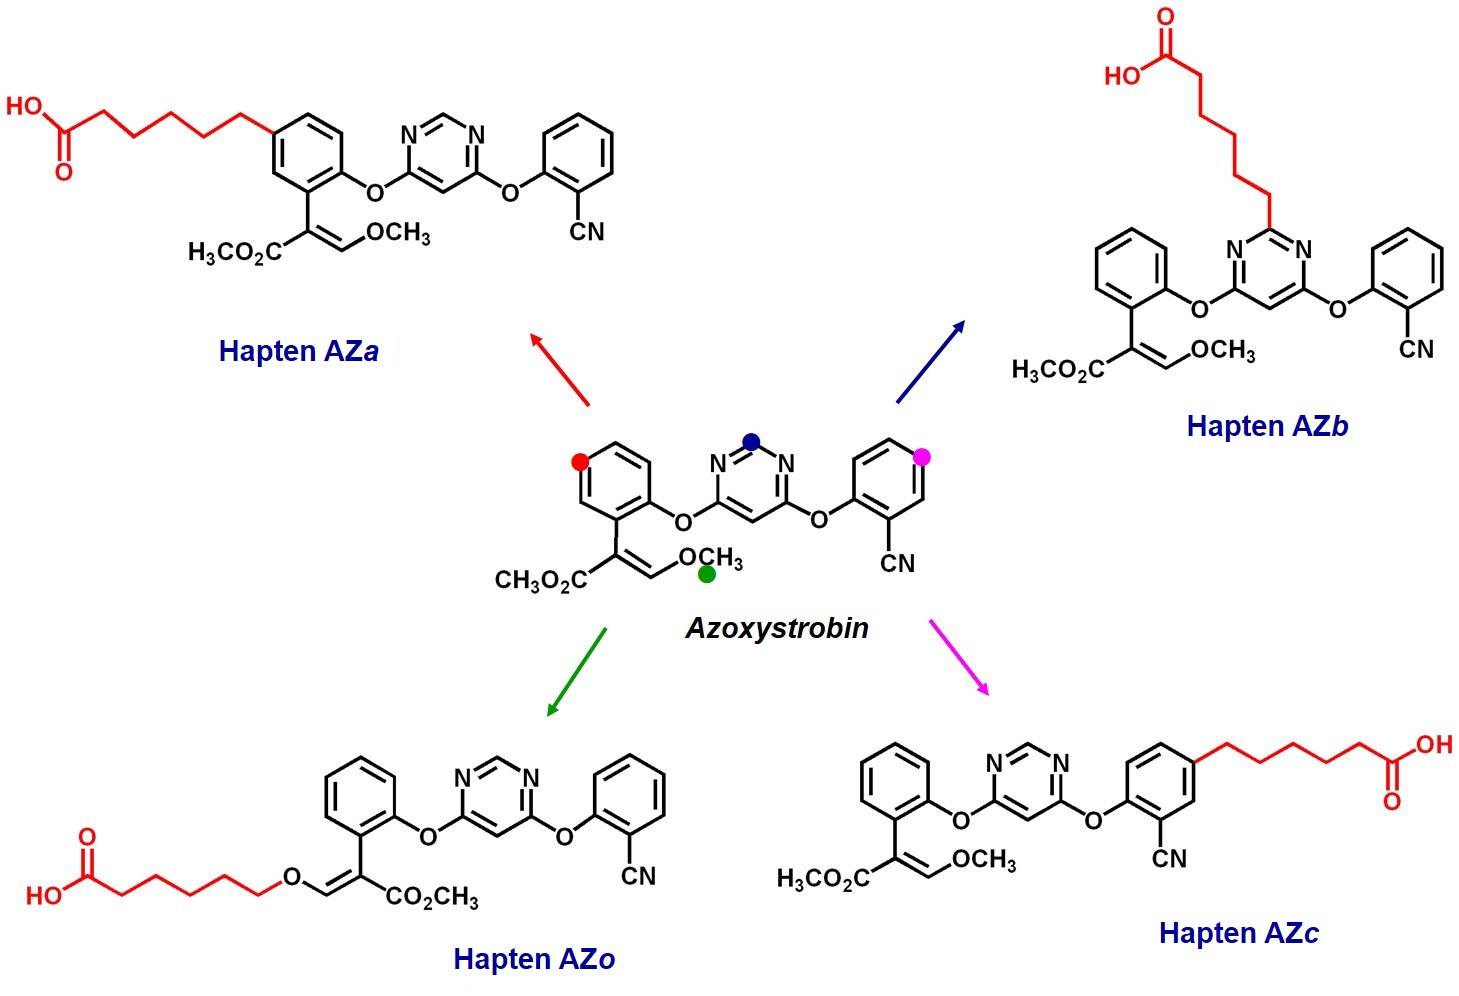 Design and synthesis of analyte haptens (azoxystrobin)